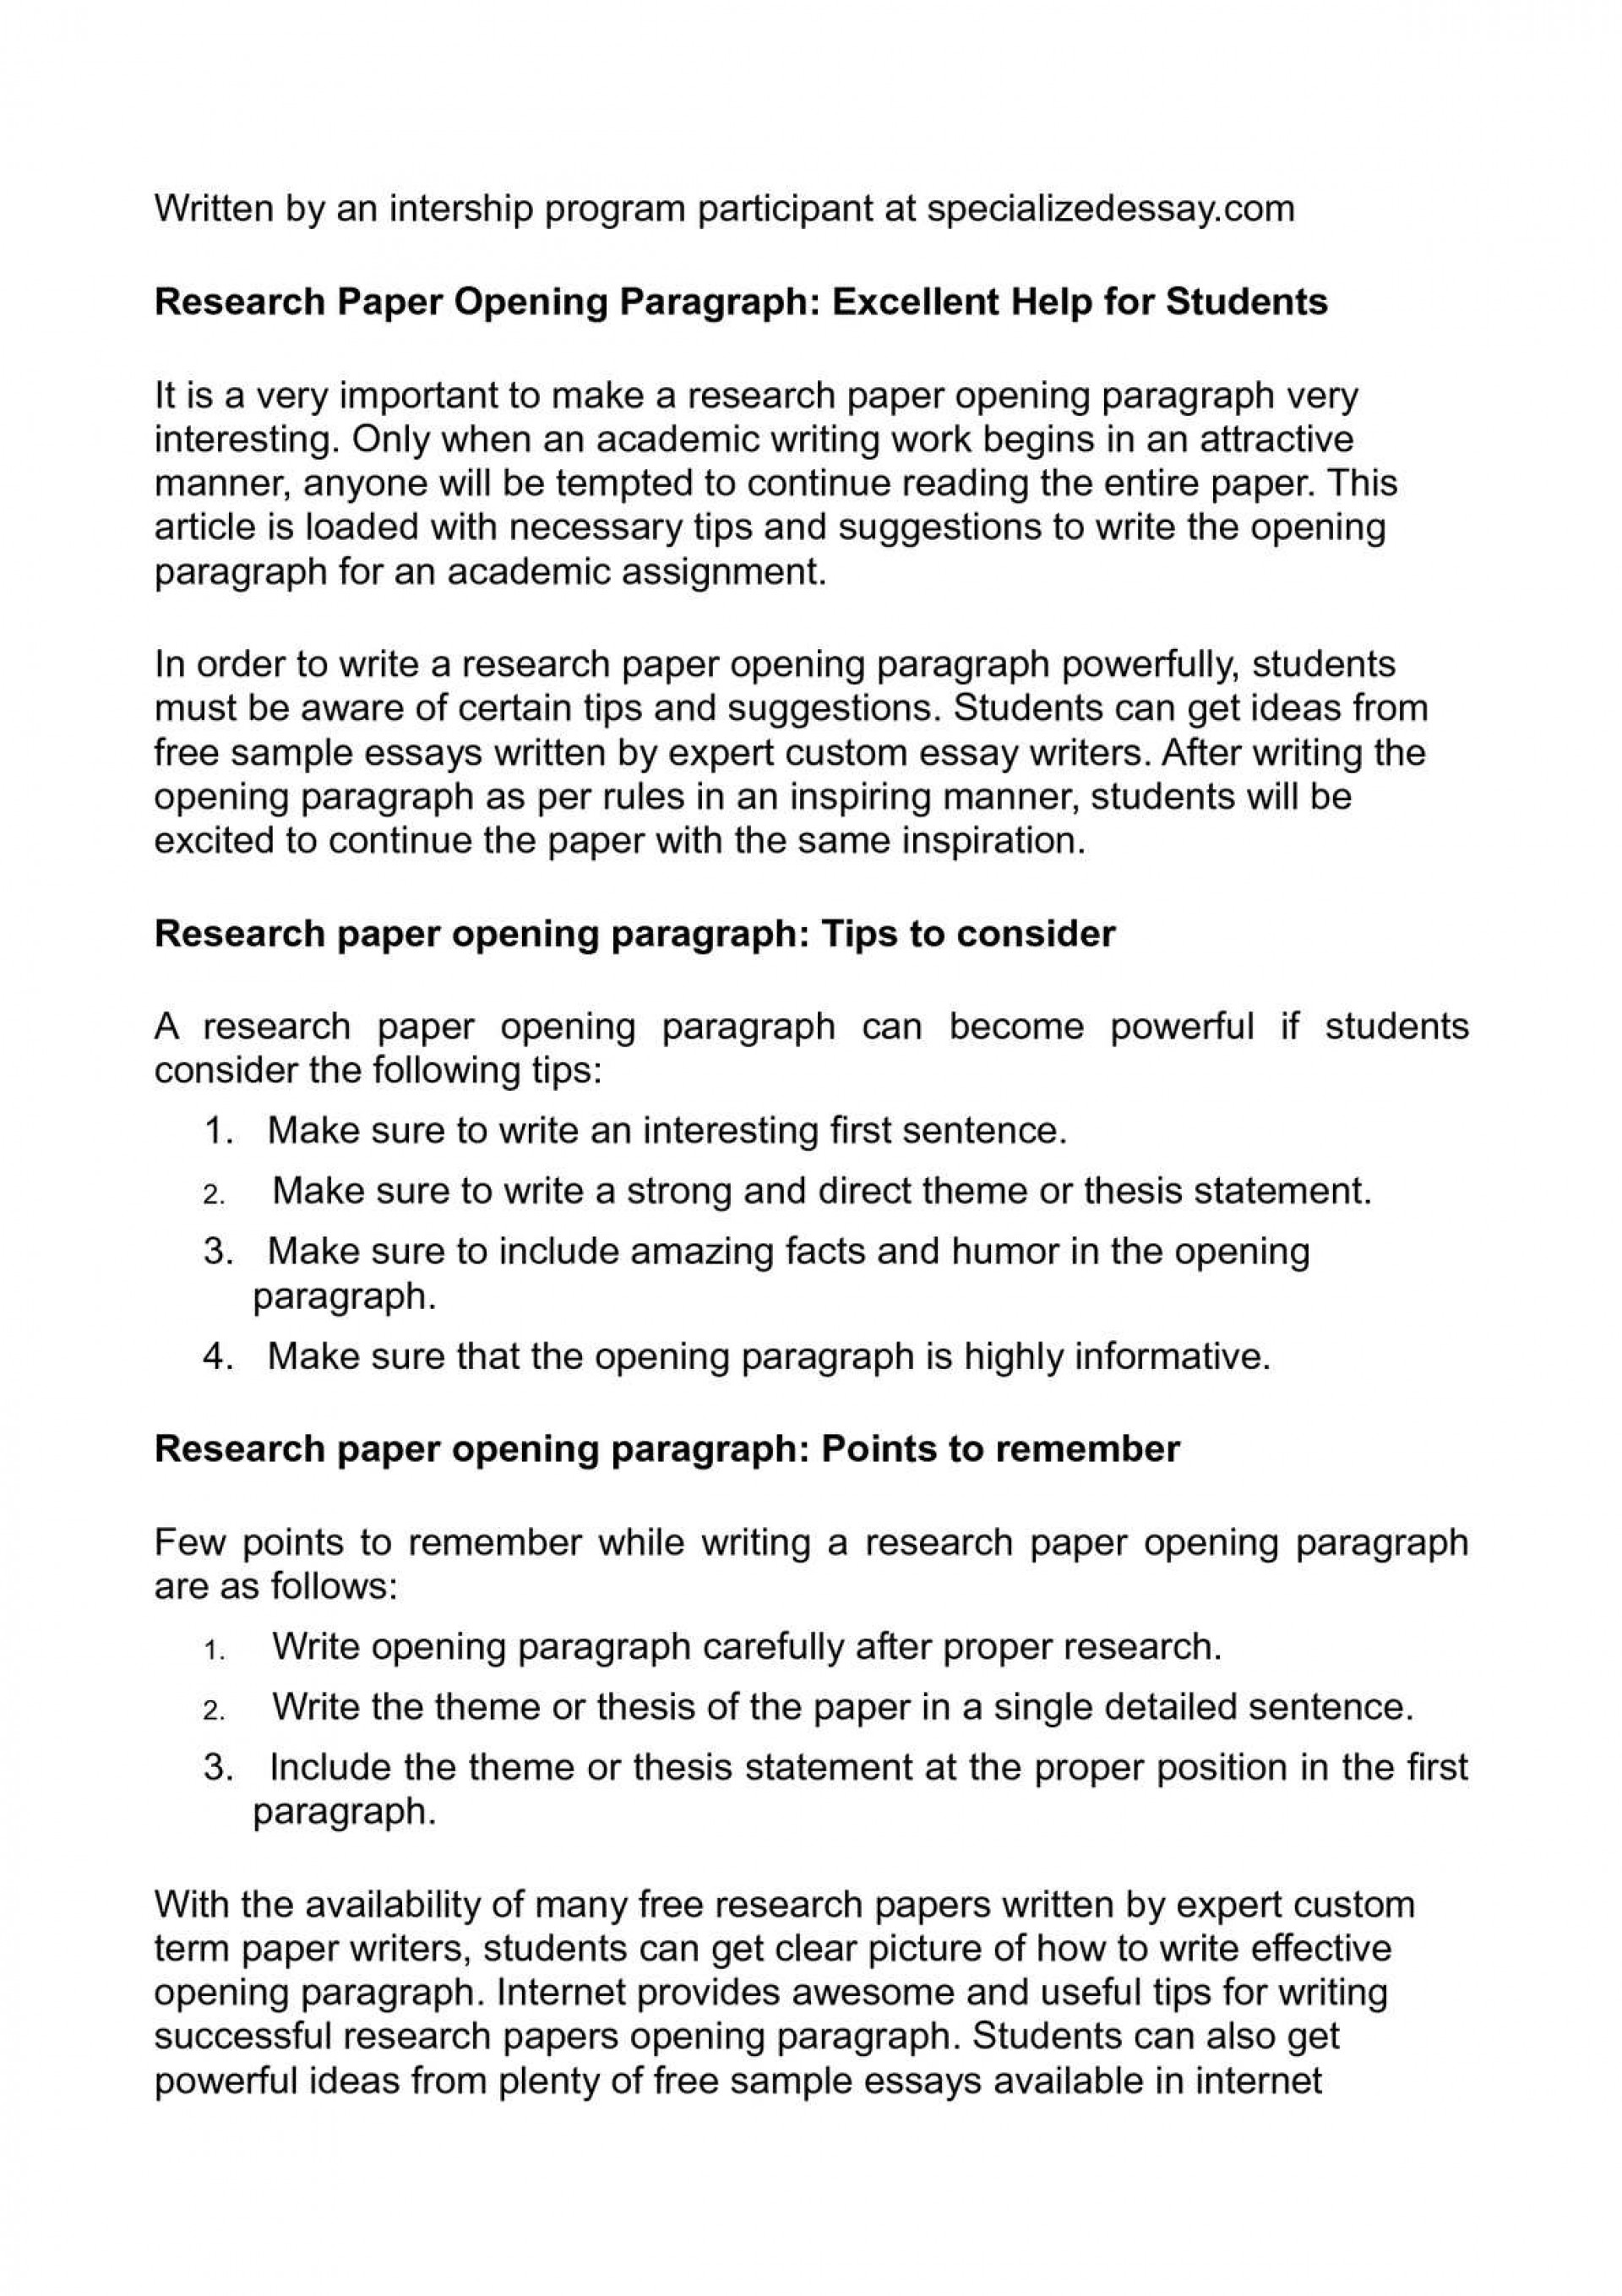 016 Essay Example First Sentence Of An Frightening Academic Good Writing The Draft 1920